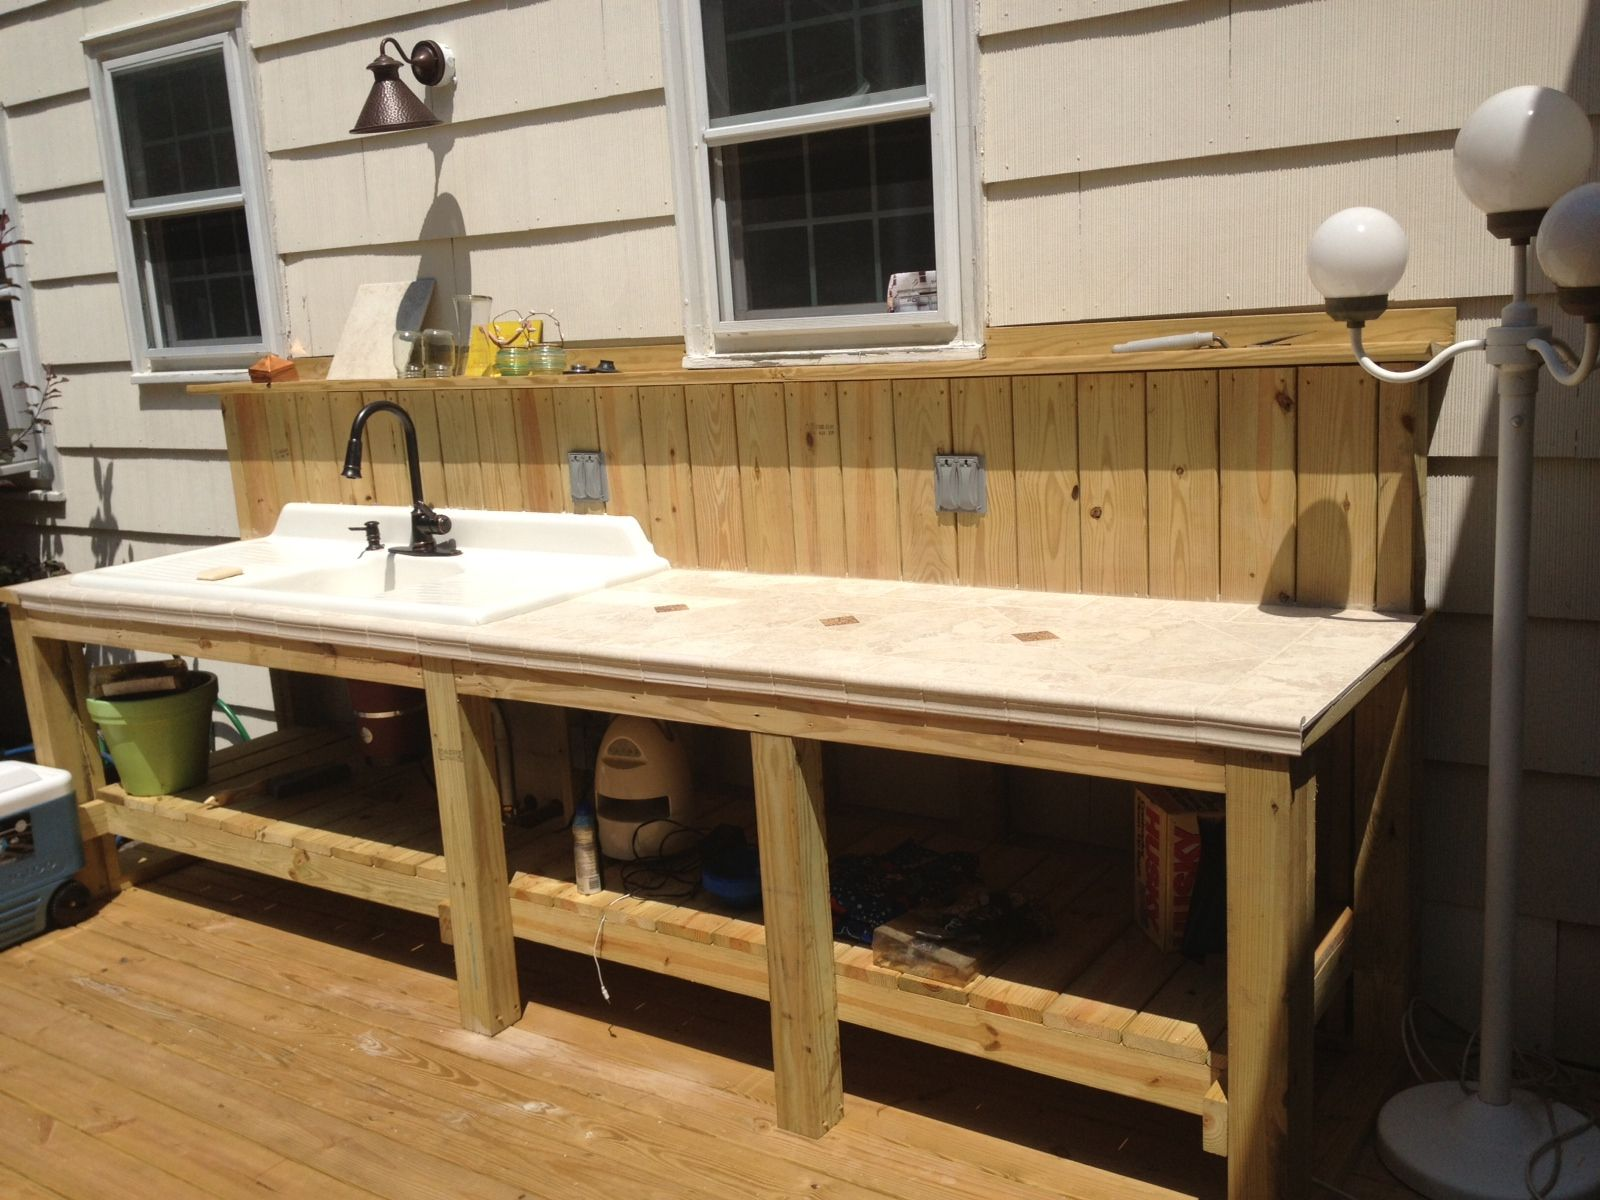 outdoor sink and countertop area plete with garbage disposal